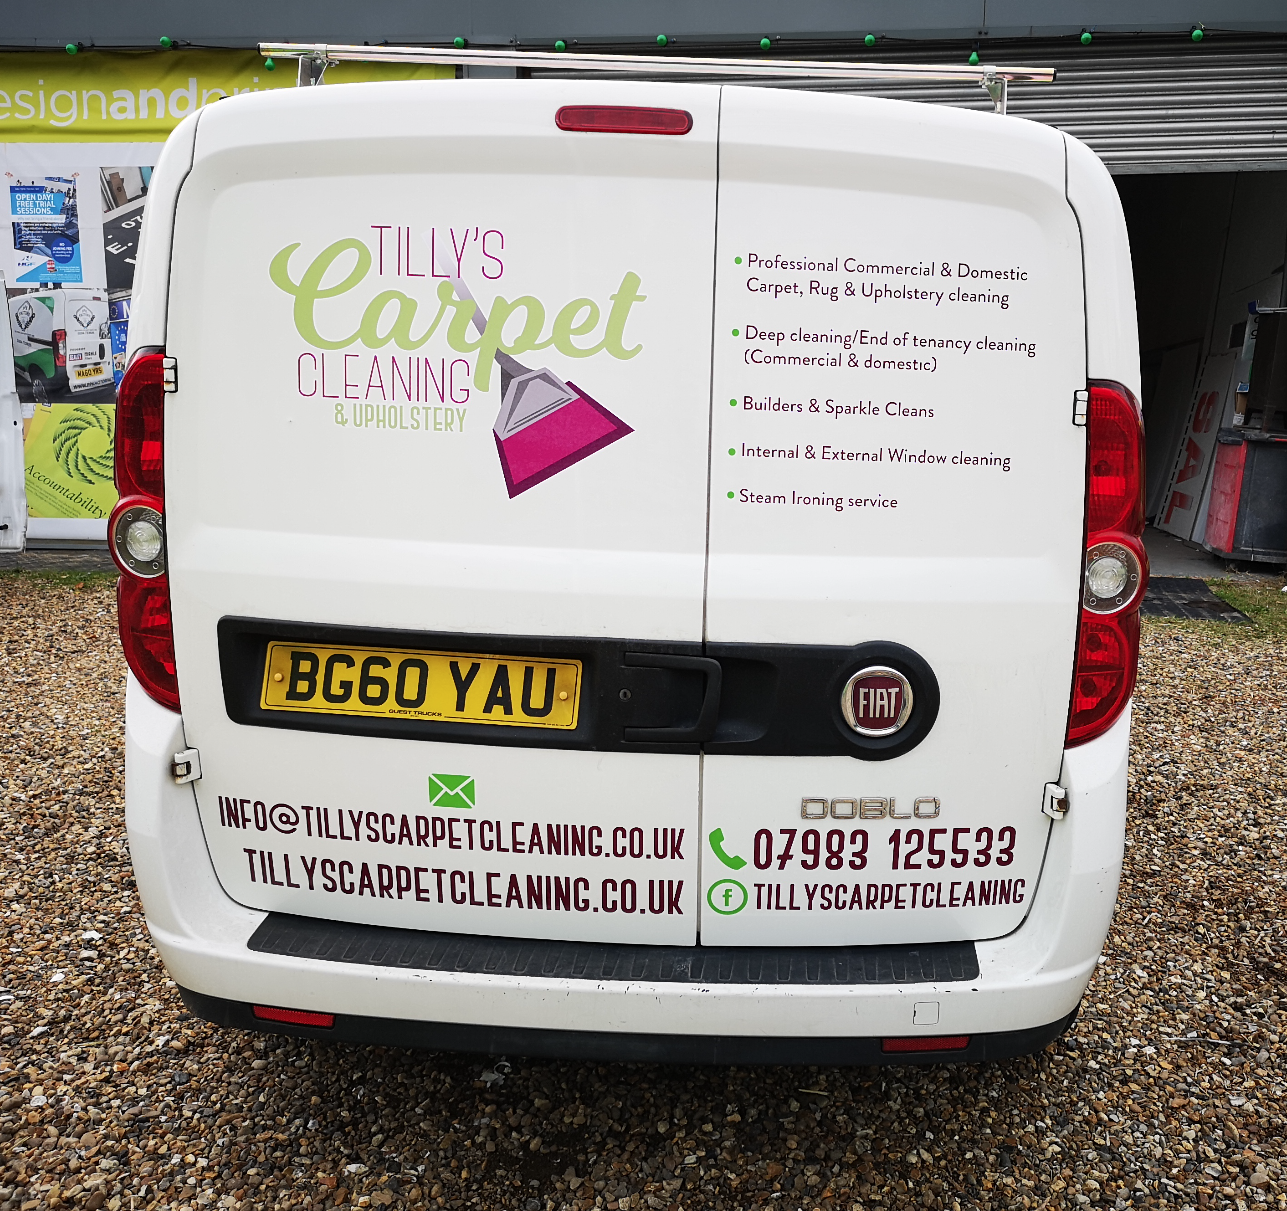 Carpet cleaning vehicle signage in Suffolk